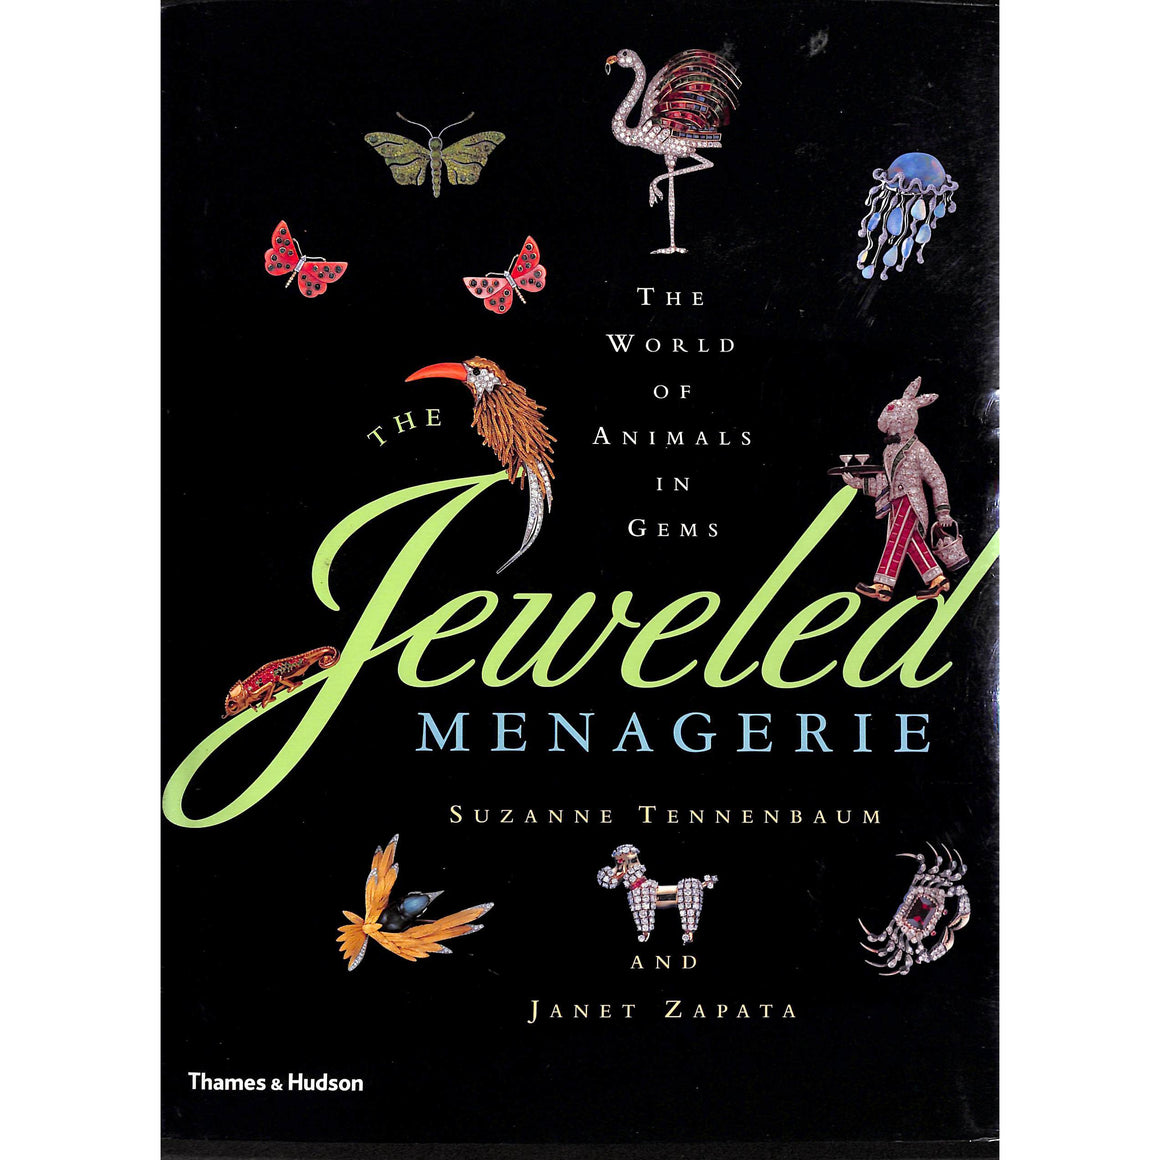 The Jeweled Menagerie